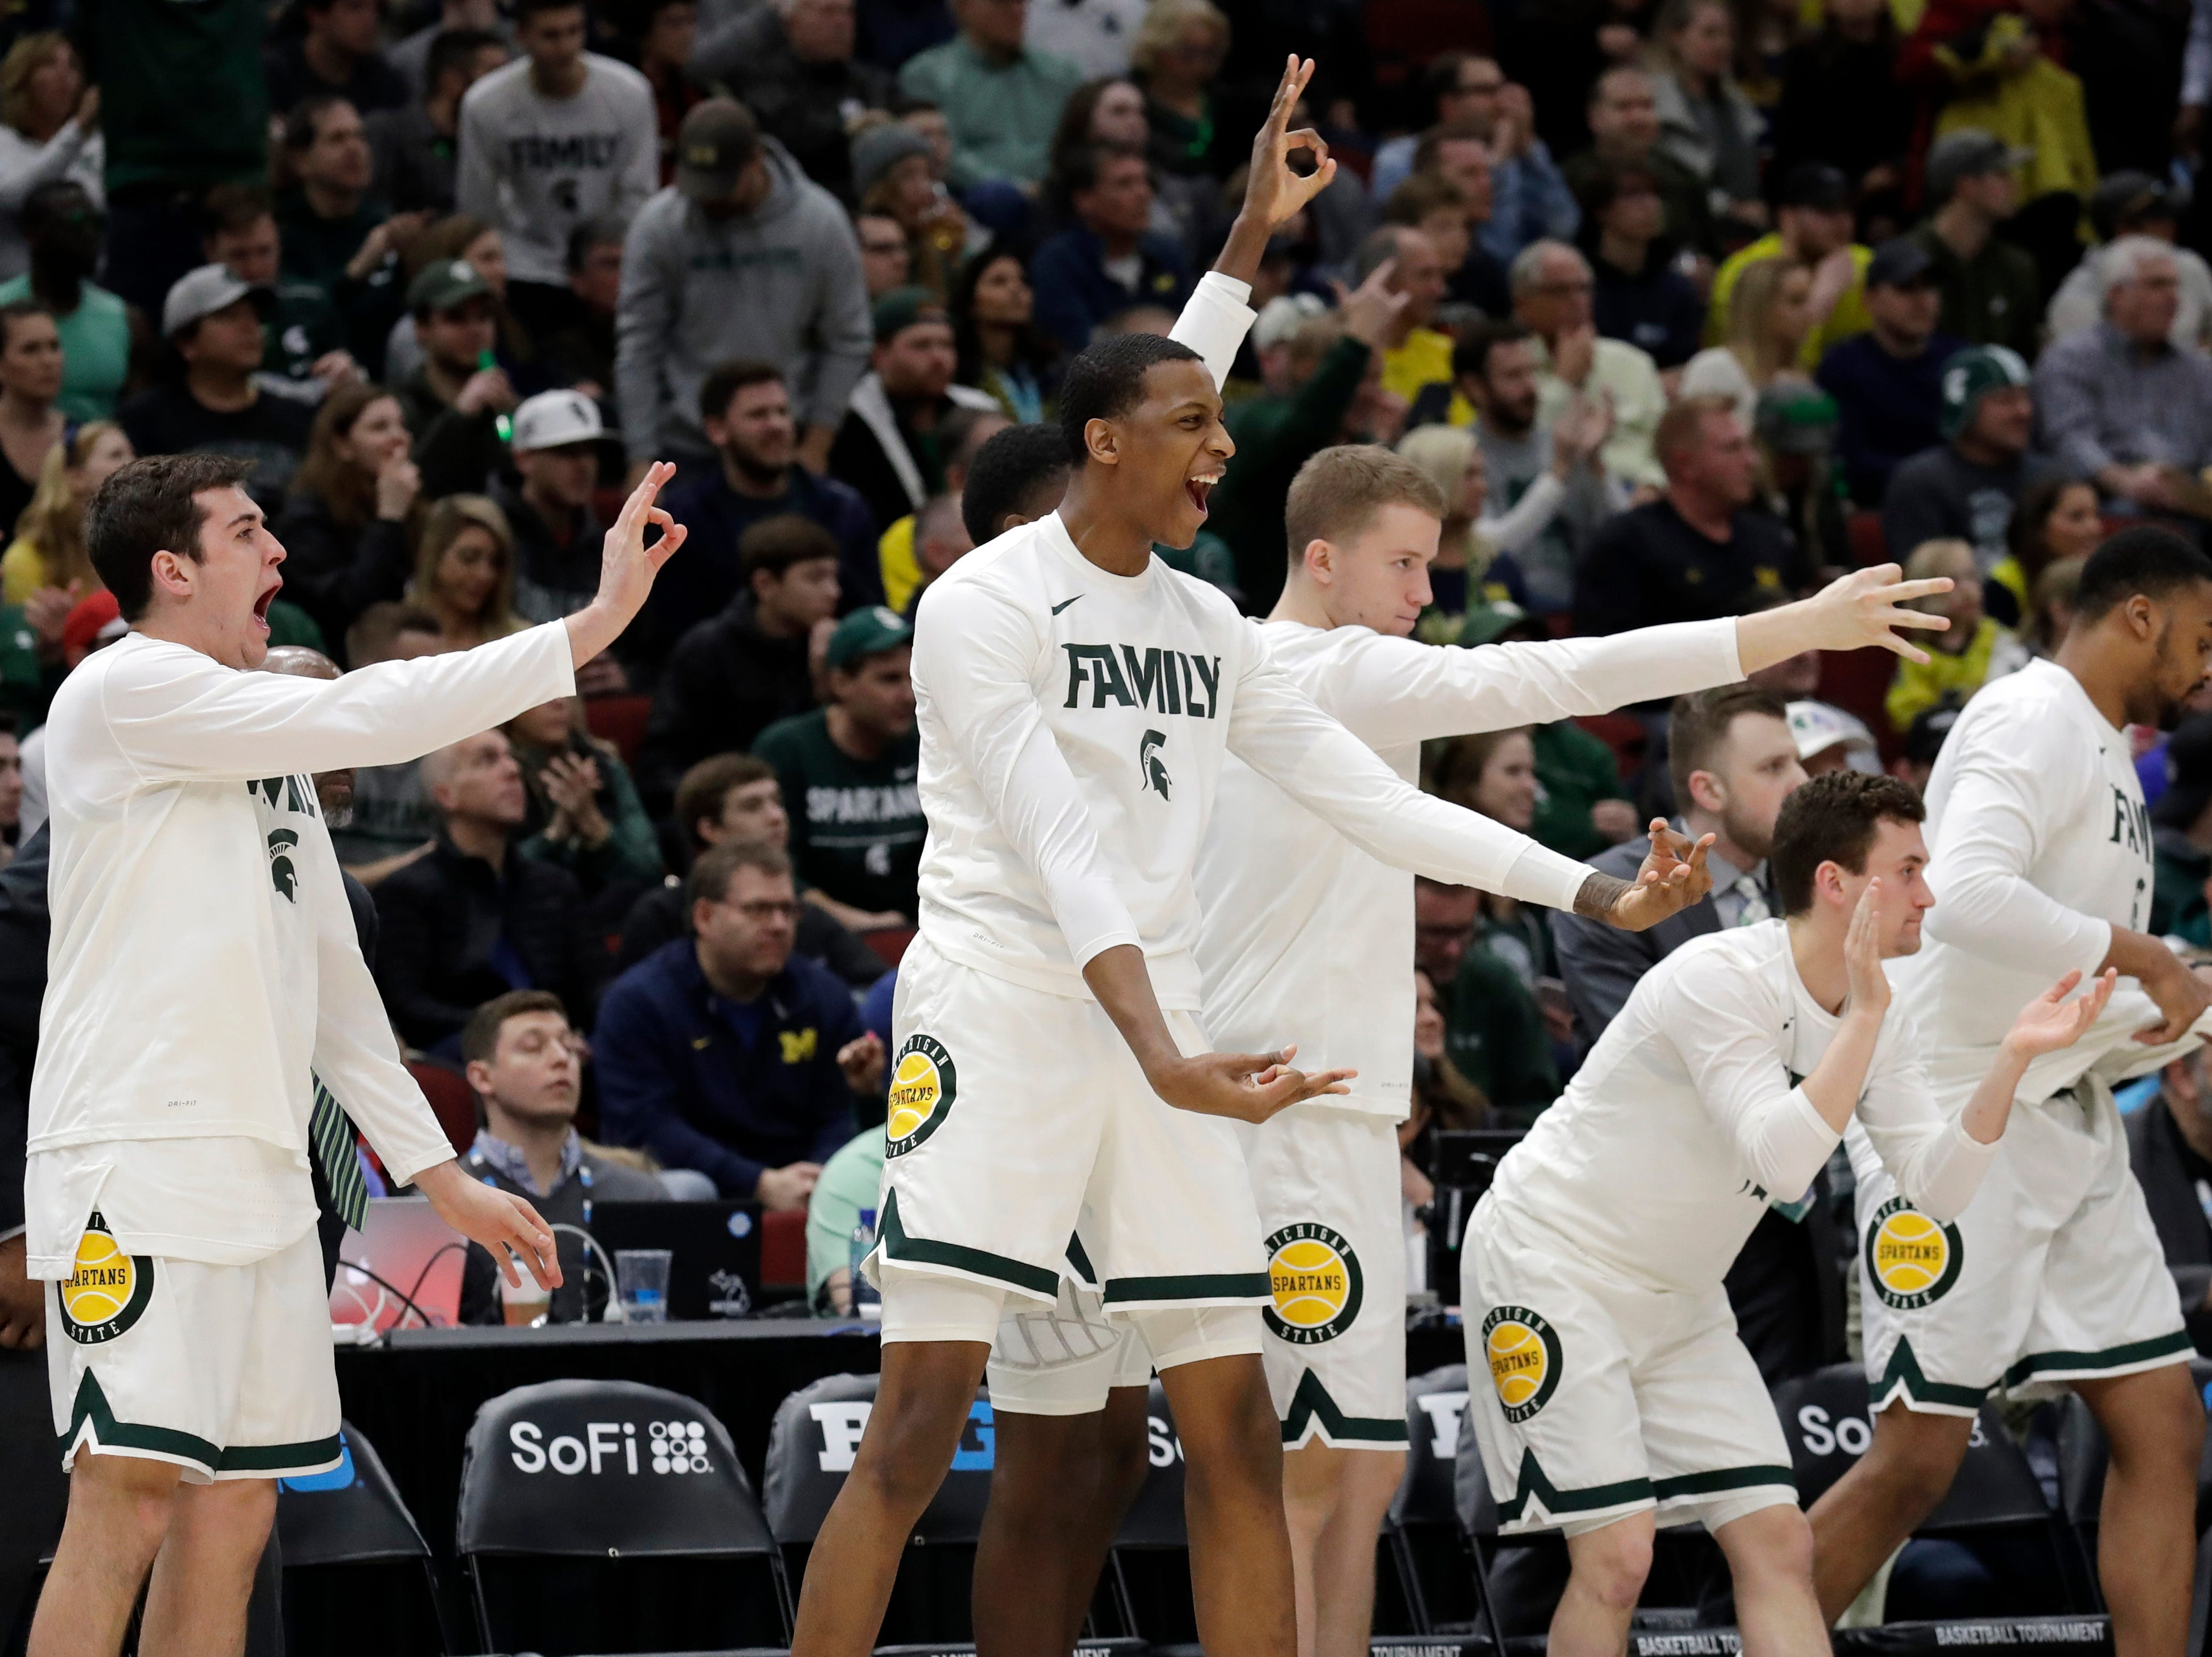 Michigan State bench celebrate after Matt McQuaid shoots a 3-point basket during the first half of an NCAA college basketball championship game against Michigan in the Big Ten Conference tournament, Sunday, March 17, 2019, in Chicago.